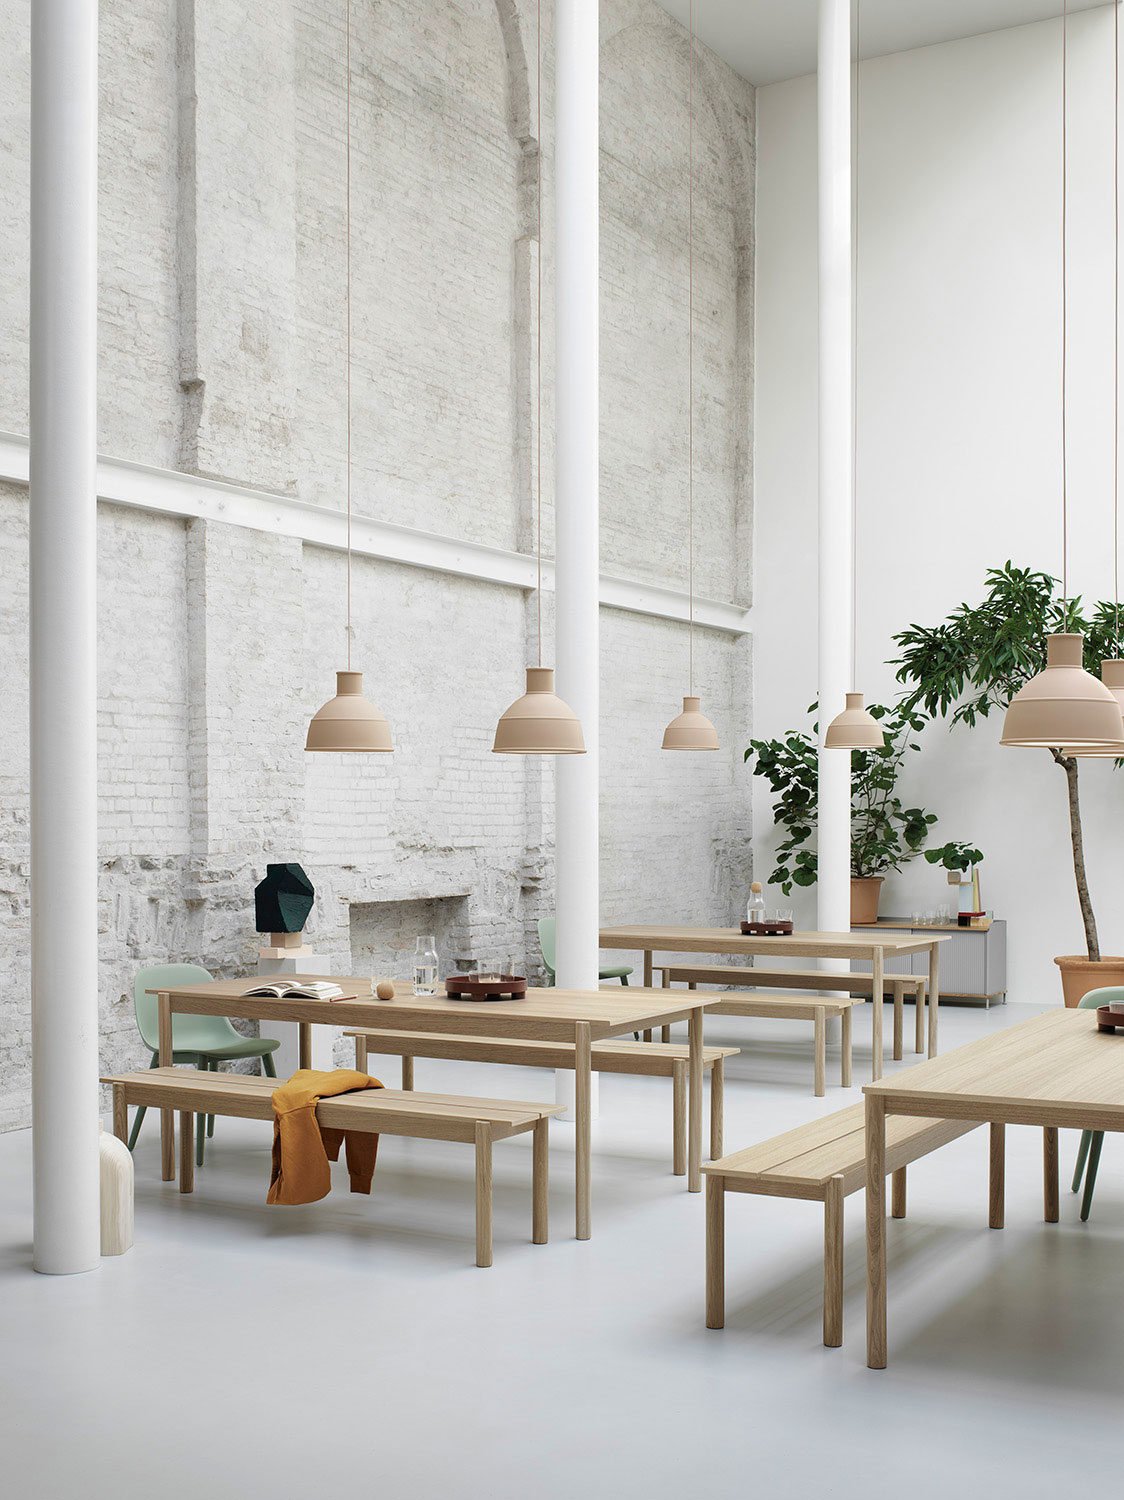 Muuto Linear Wood Table & Bench Cafeteria Setting